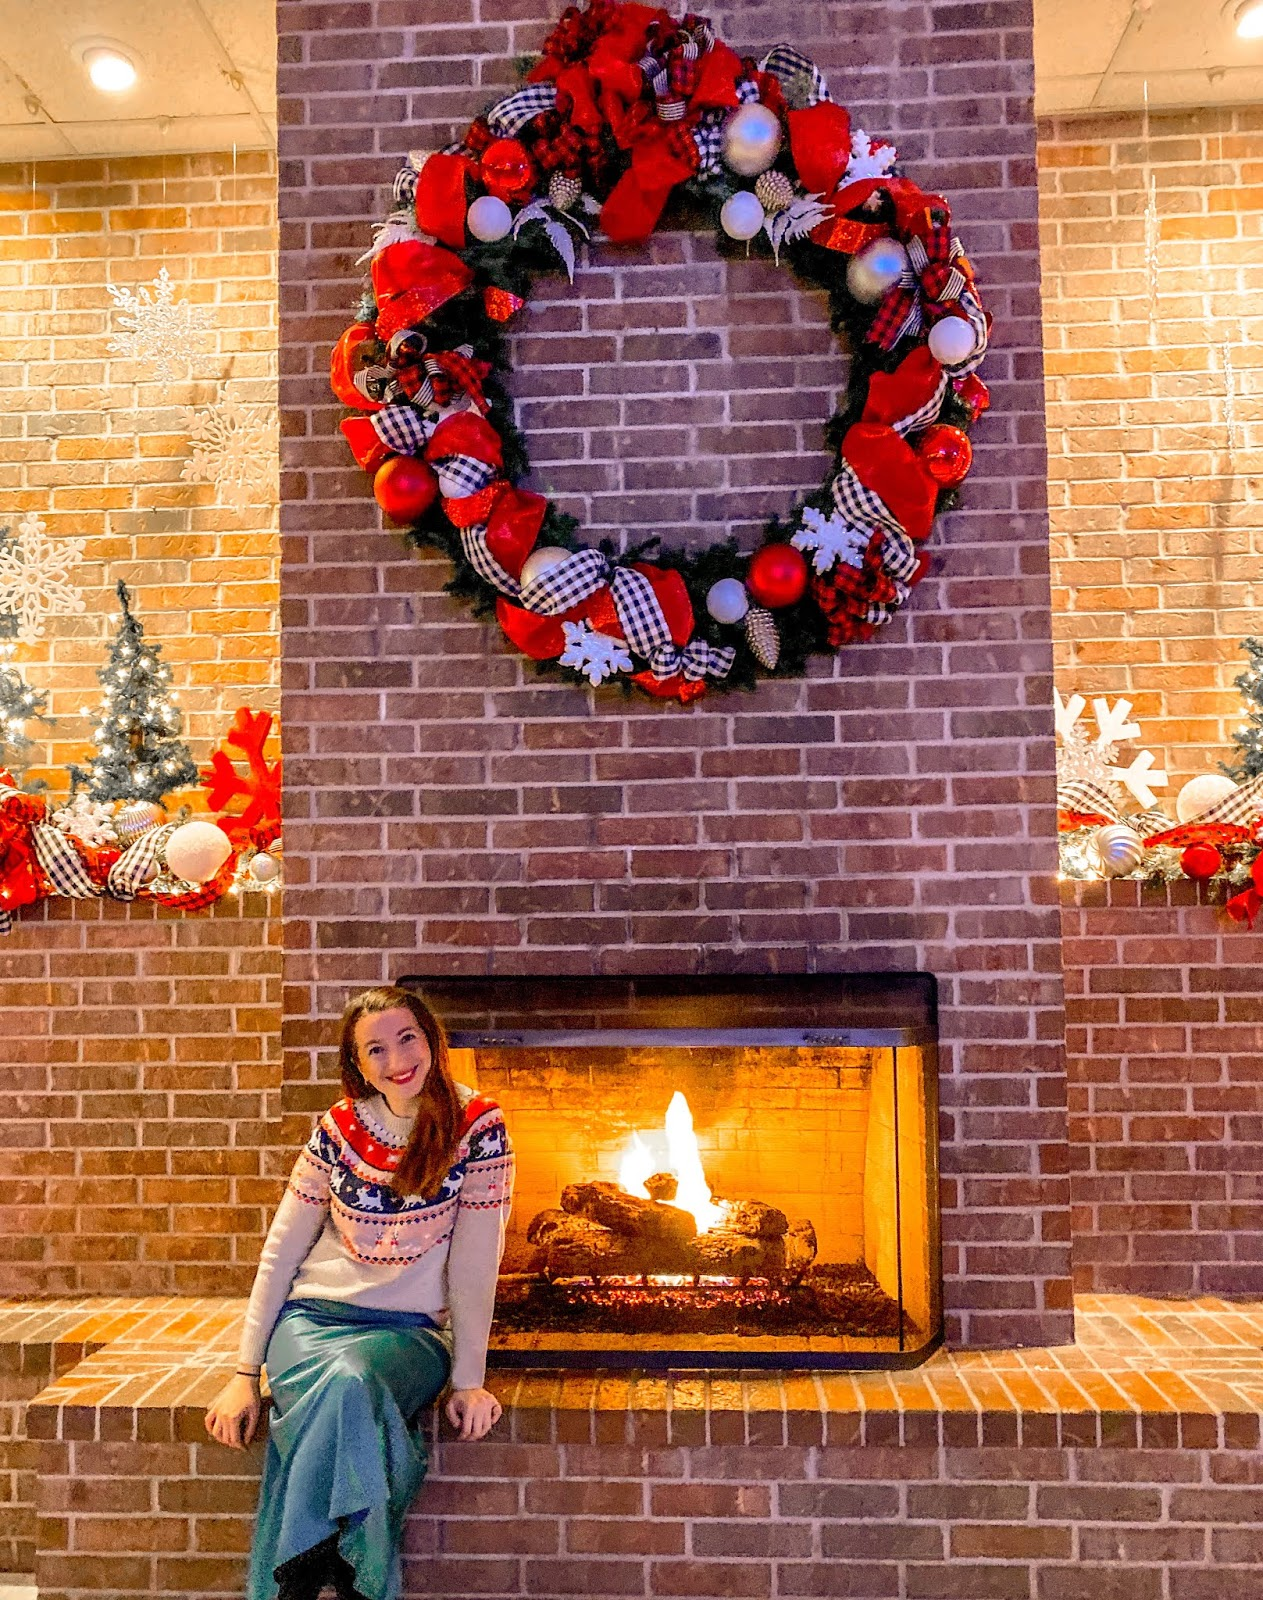 Fireplace ar The Christmas Train in Alvin